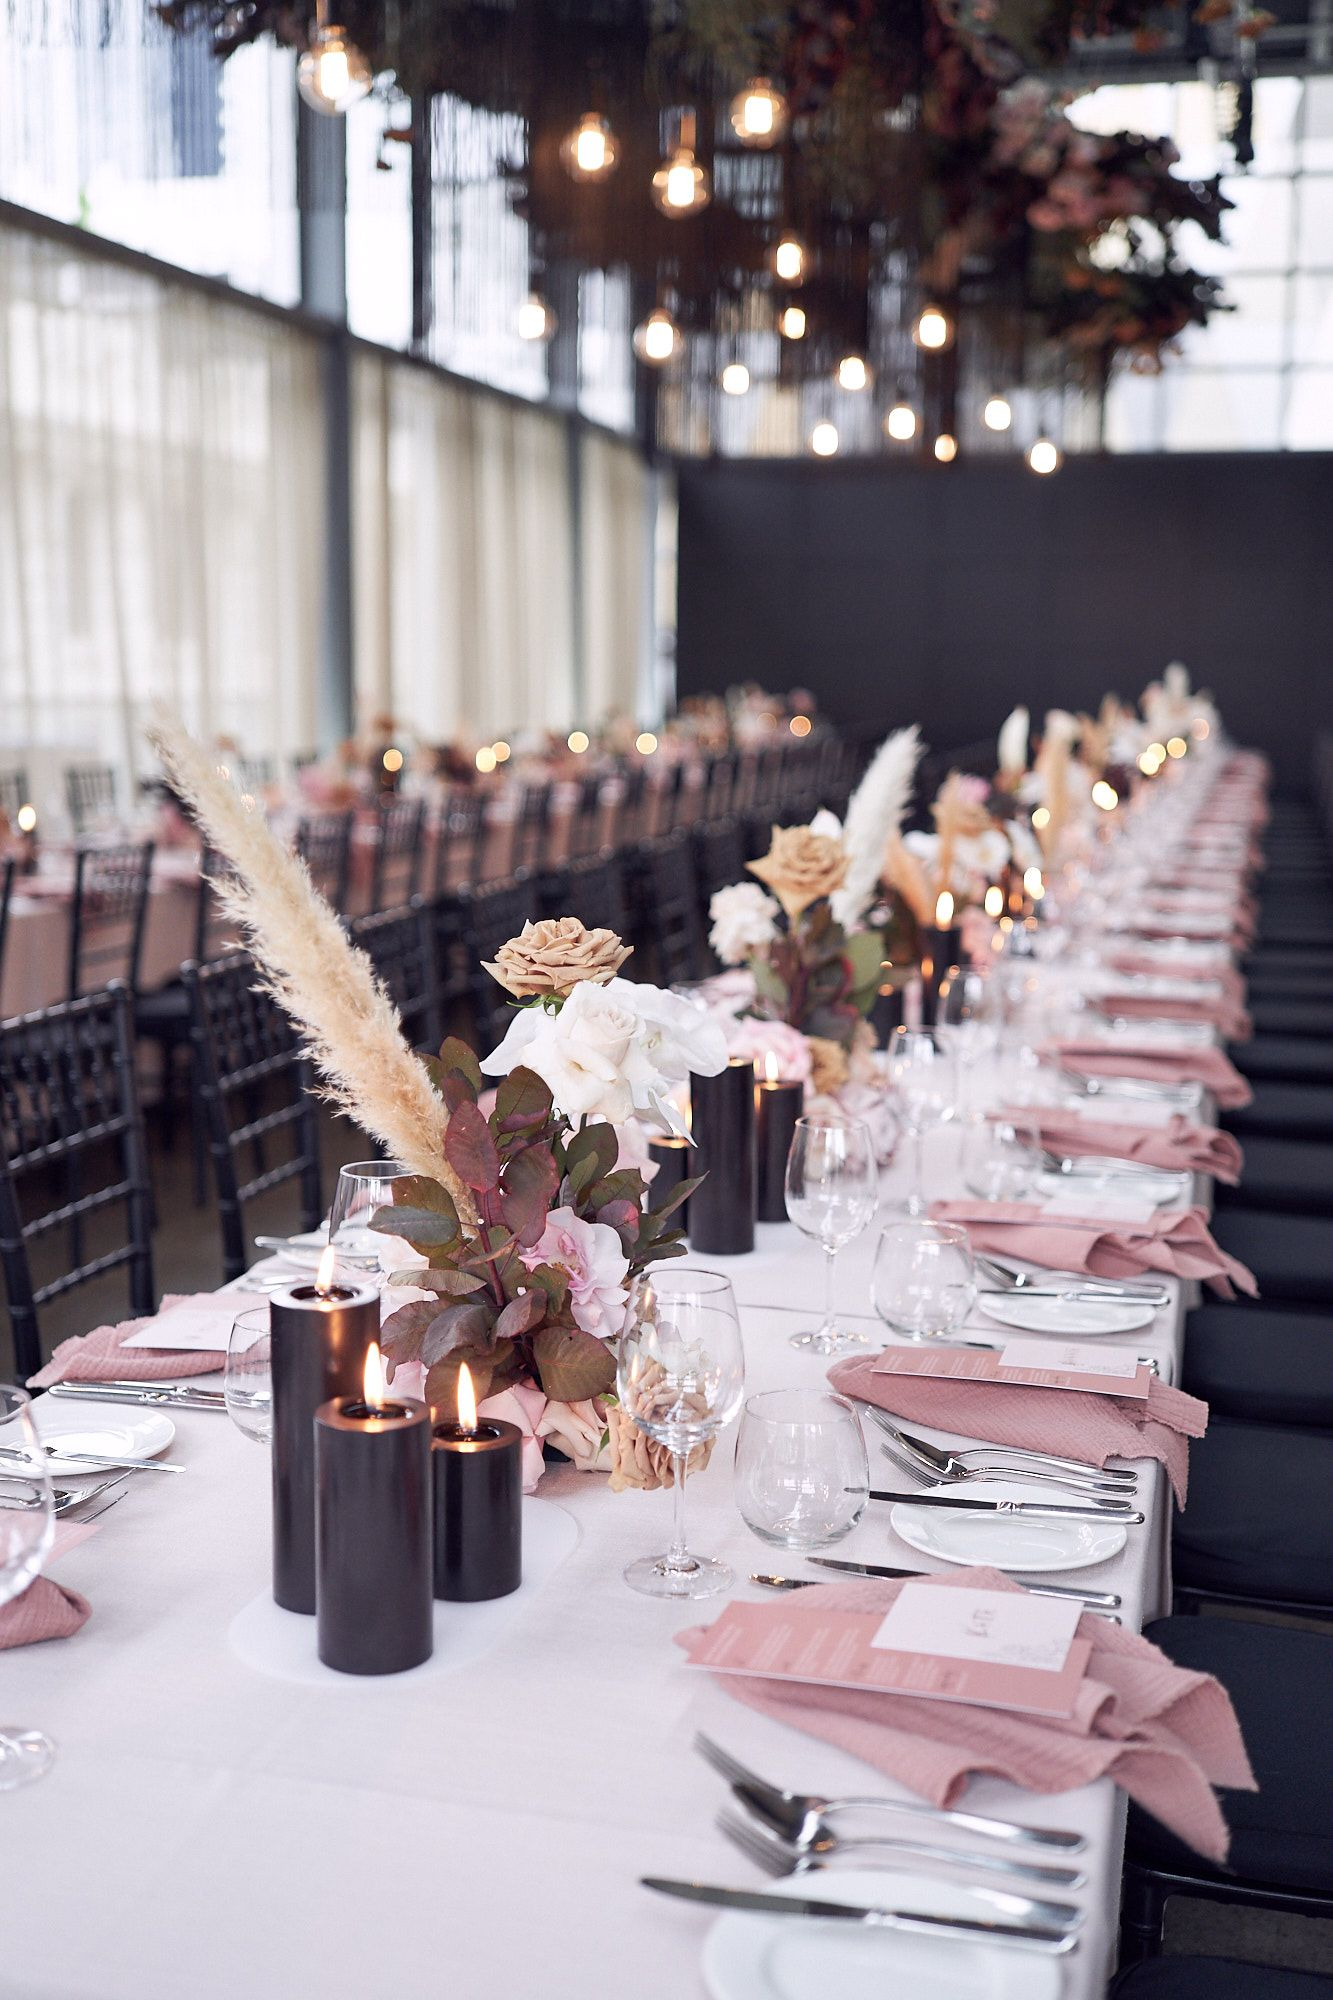 Melbourne Wedding Photos | Reception Styling inspo — styling by Creating Beautiful. photo by lost in love. pastel roses gold and black detail. Pampas grass. Alto Event Melbourne